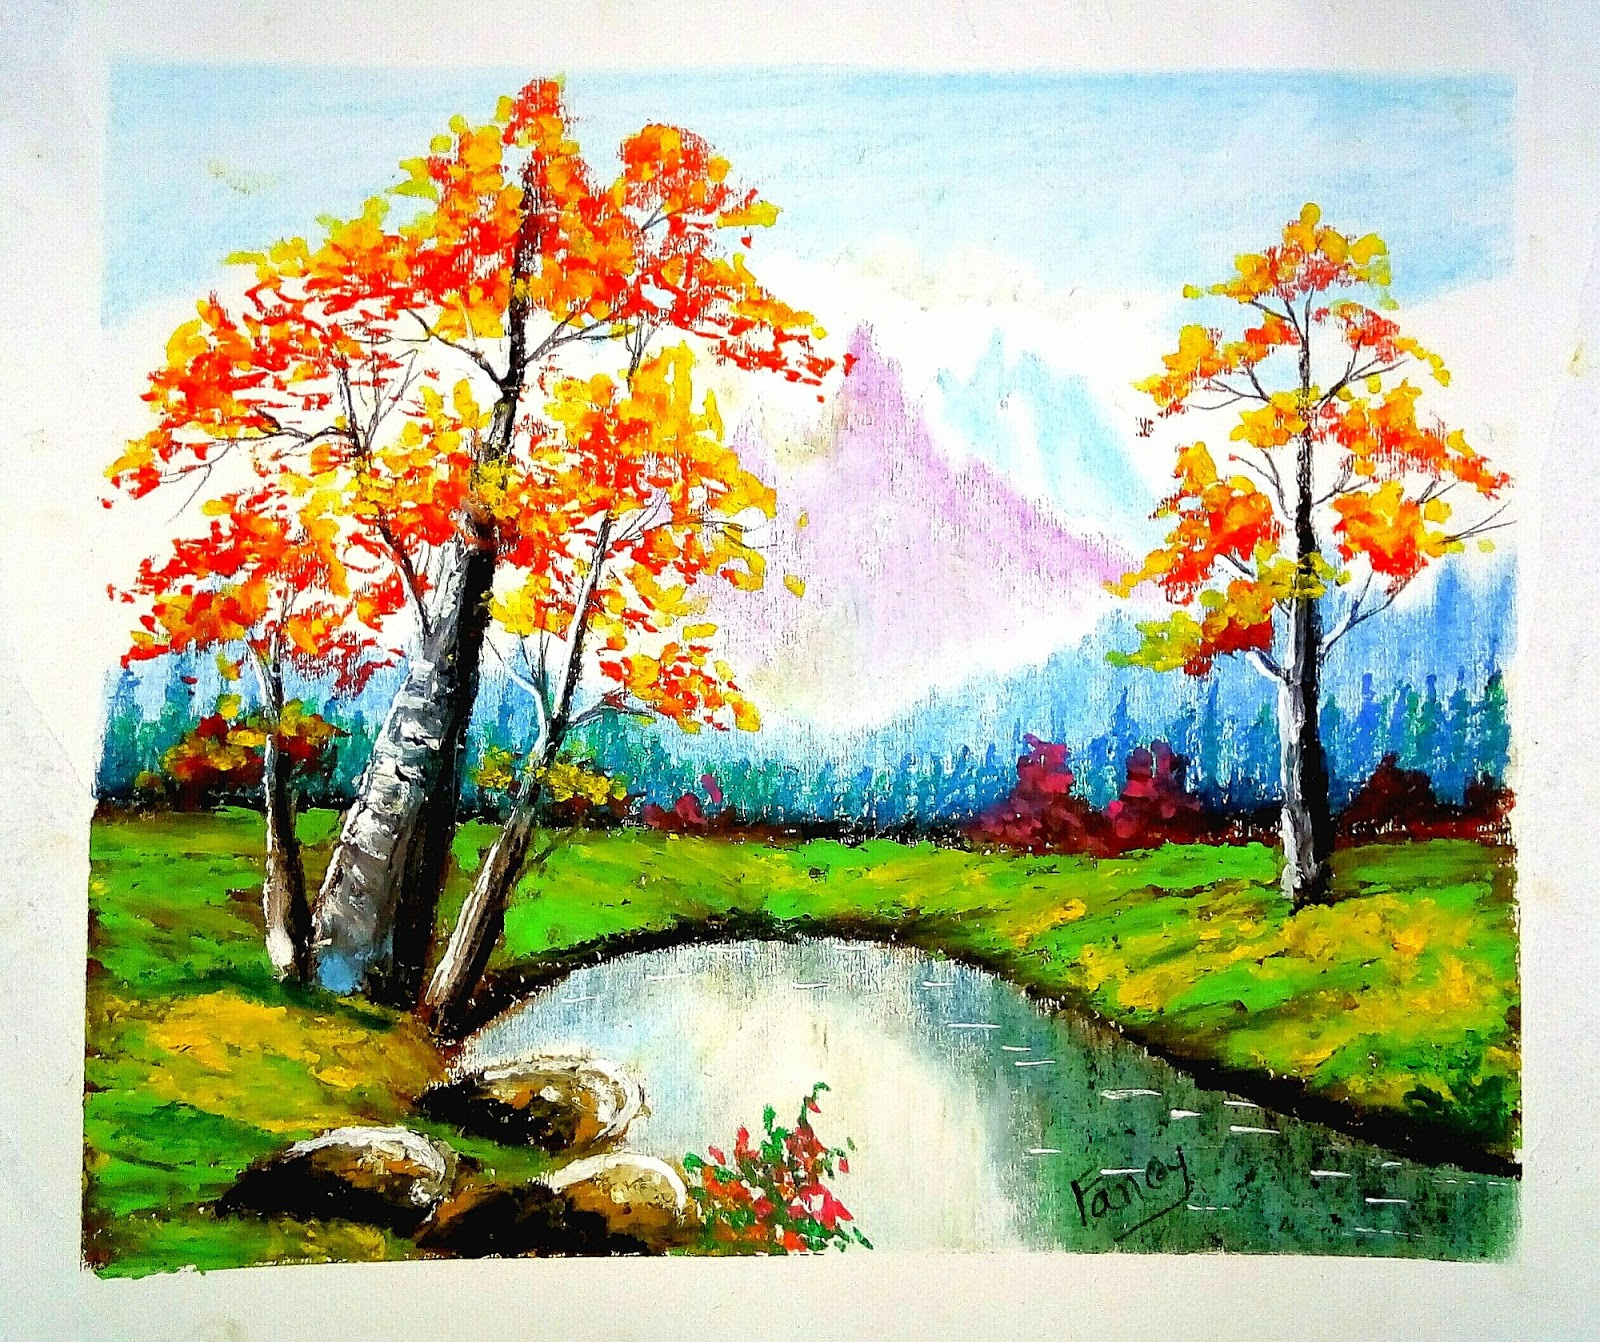 A beautiful landscape scenery drawing with oil pastel